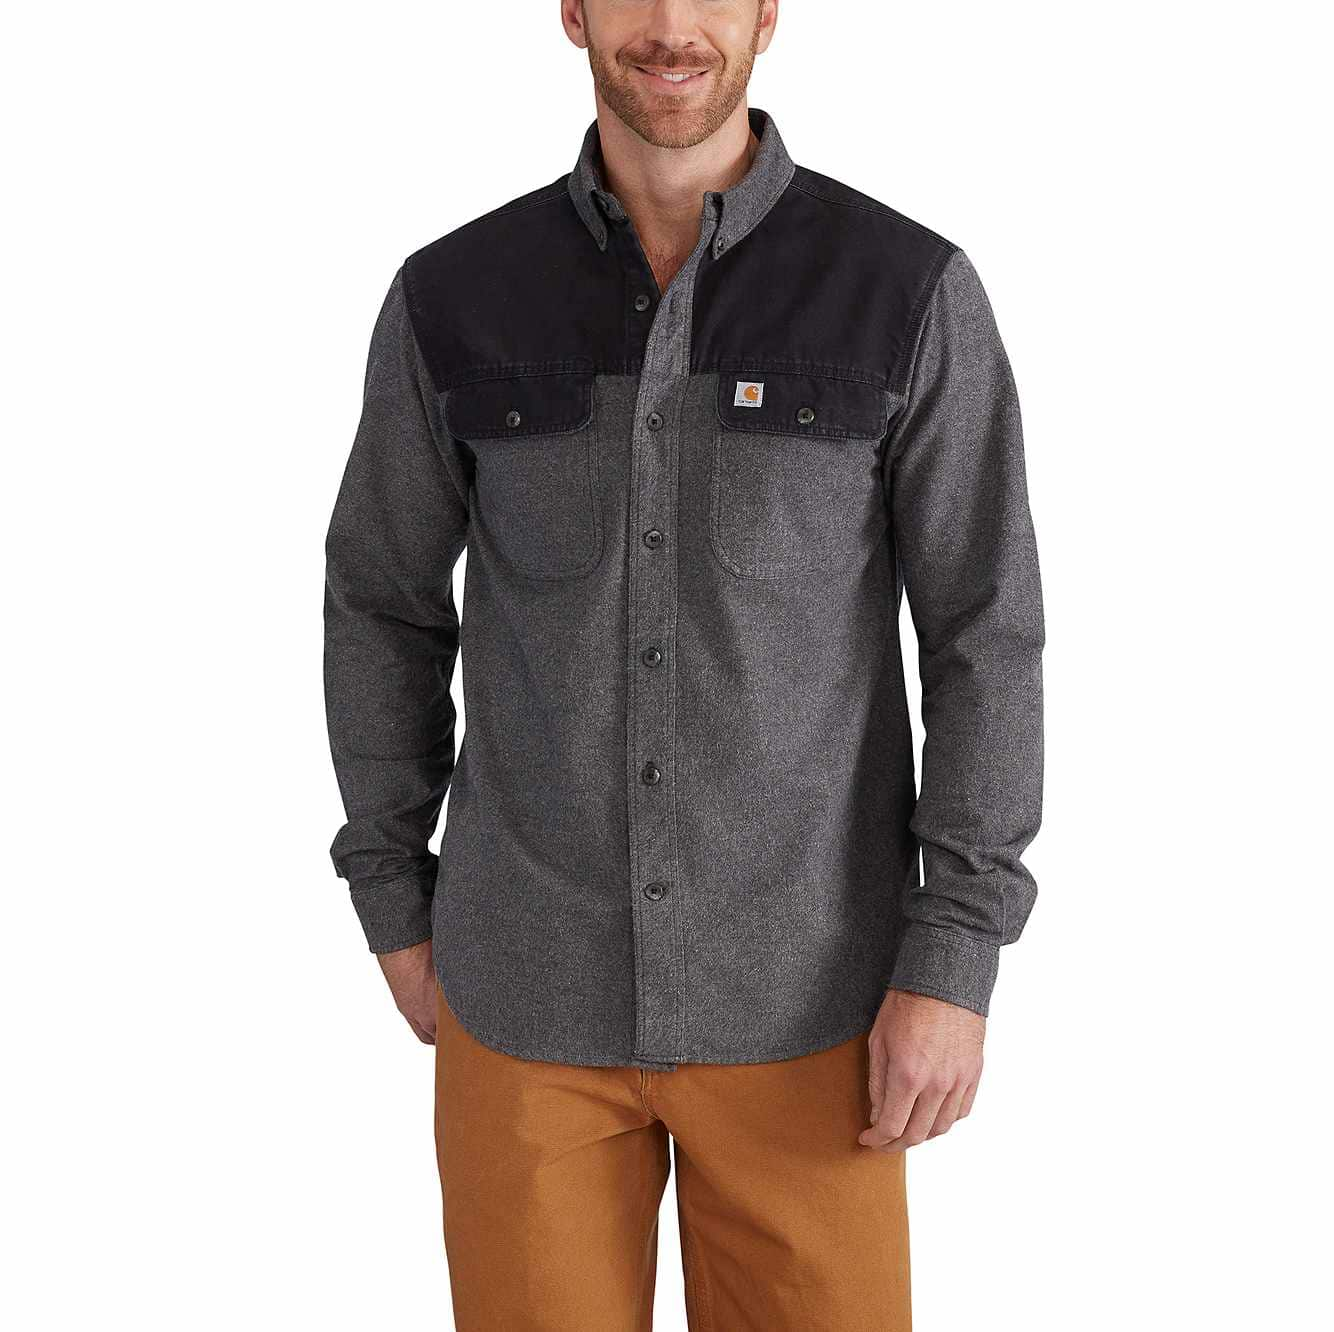 Picture of Burleson Heather Button Down Shirt in Charcoal Heather